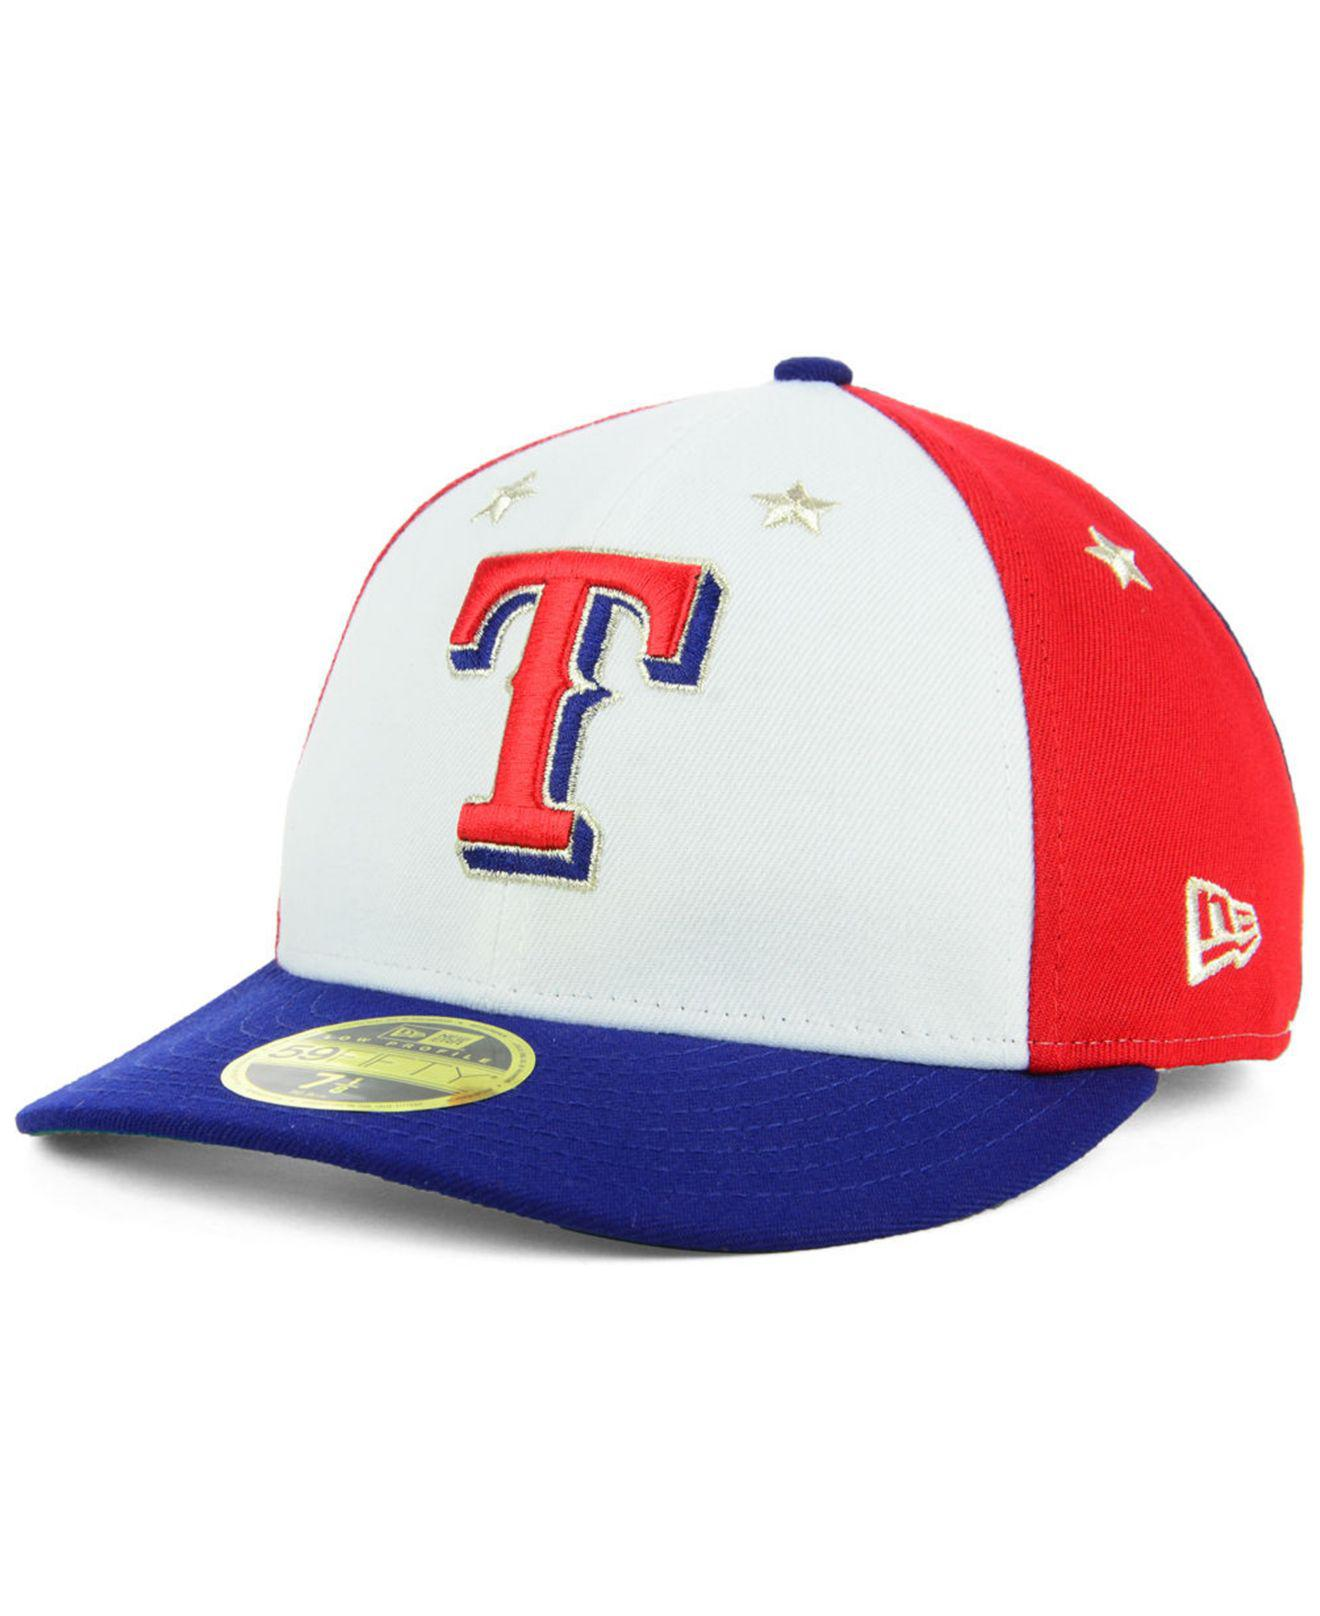 huge selection of 559f5 ef222 KTZ Texas Rangers All Star Game Patch Low Profile 59fifty Fitted Cap ...